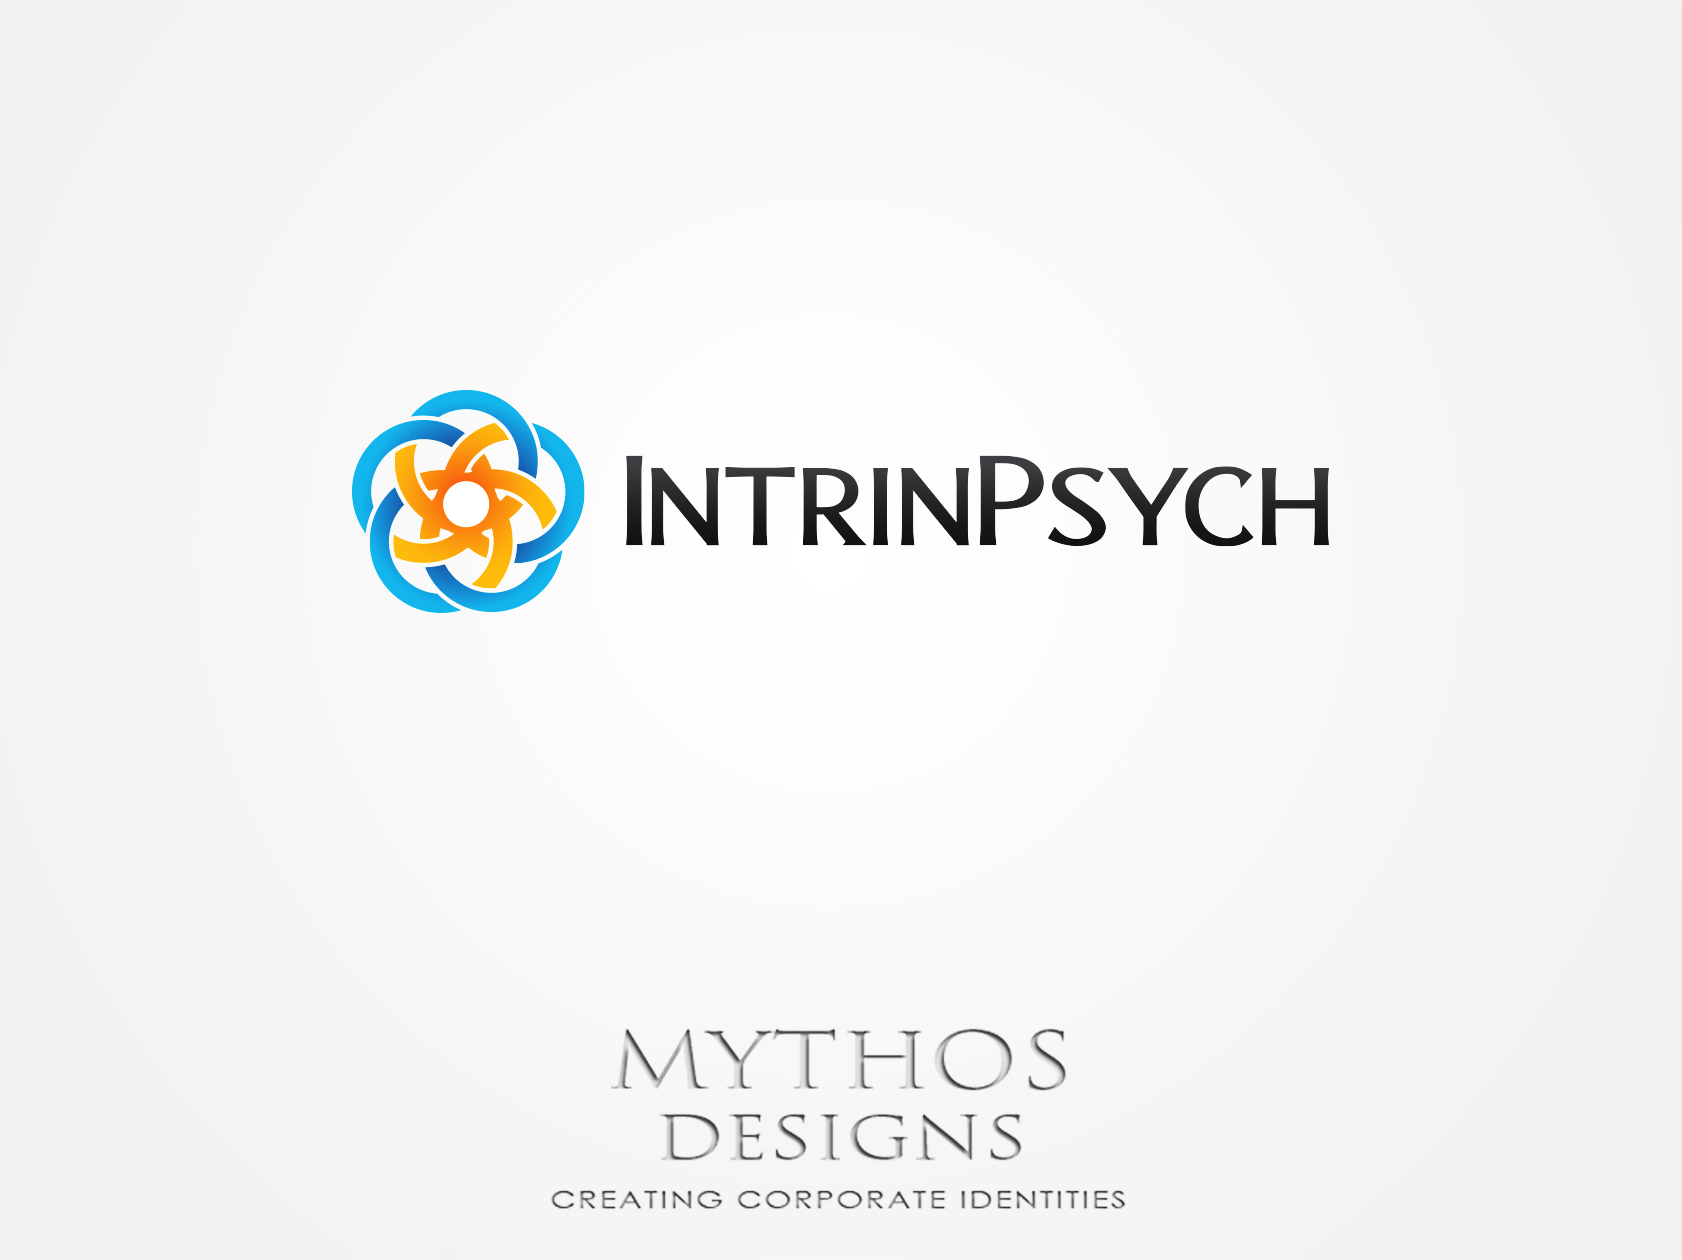 Logo Design by Mythos Designs - Entry No. 145 in the Logo Design Contest New Logo Design for IntrinPsych.